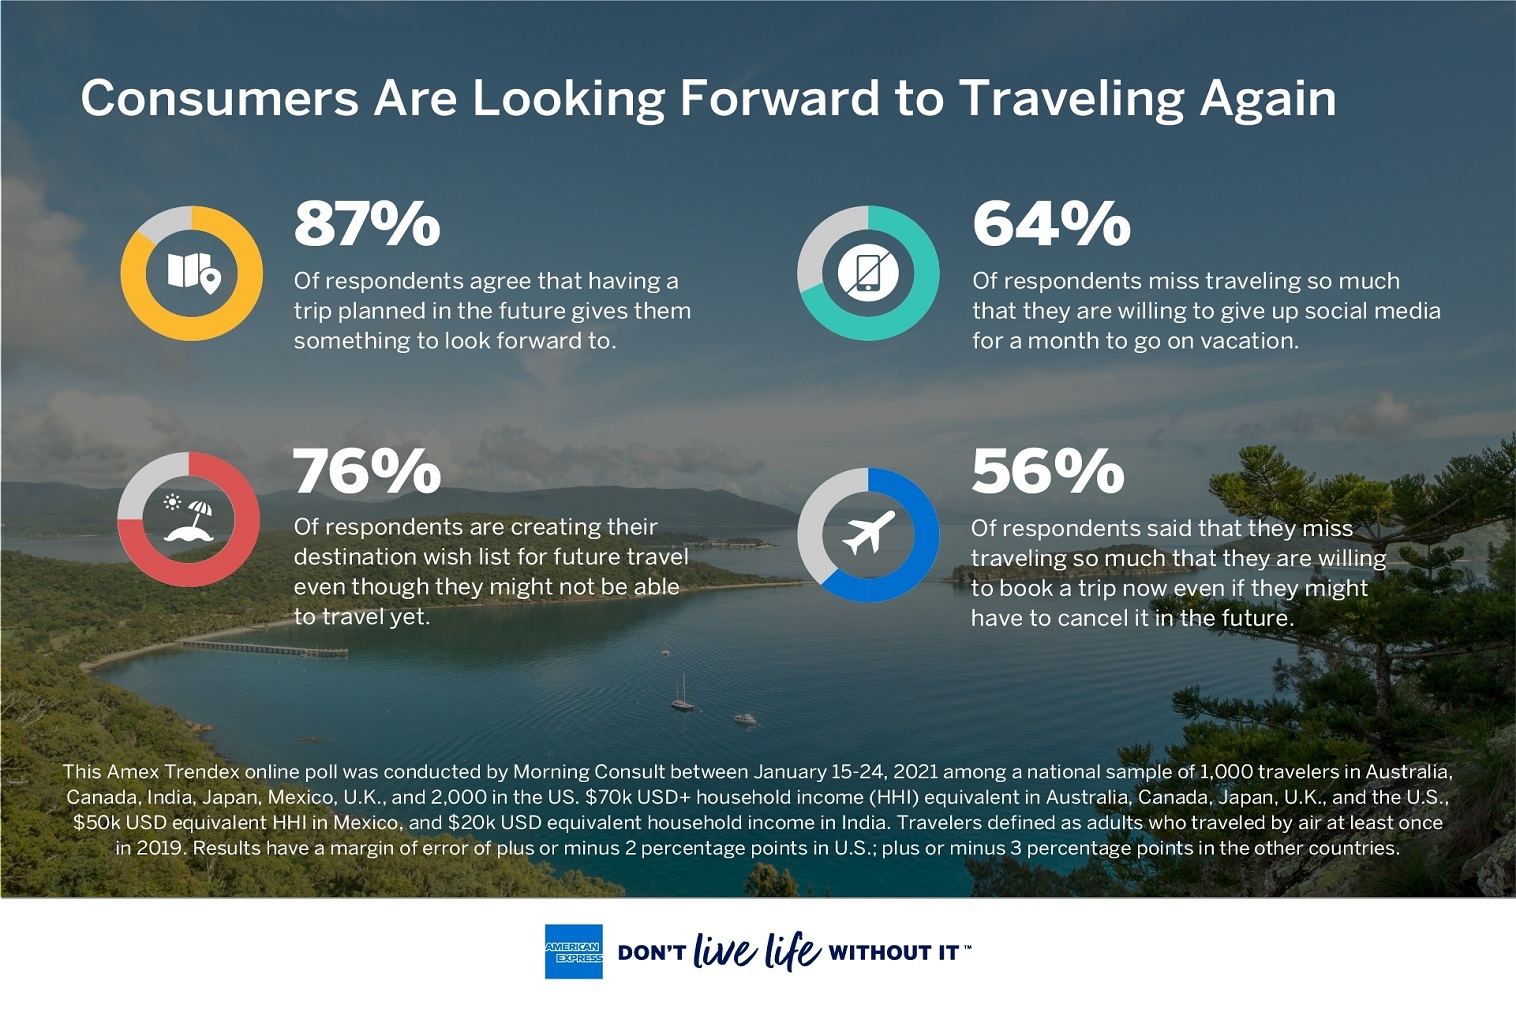 Global consumer survey reveals key trends indicating pent-up demand for travel, a readiness to plan for future trips, and the rise of the digital nomad.